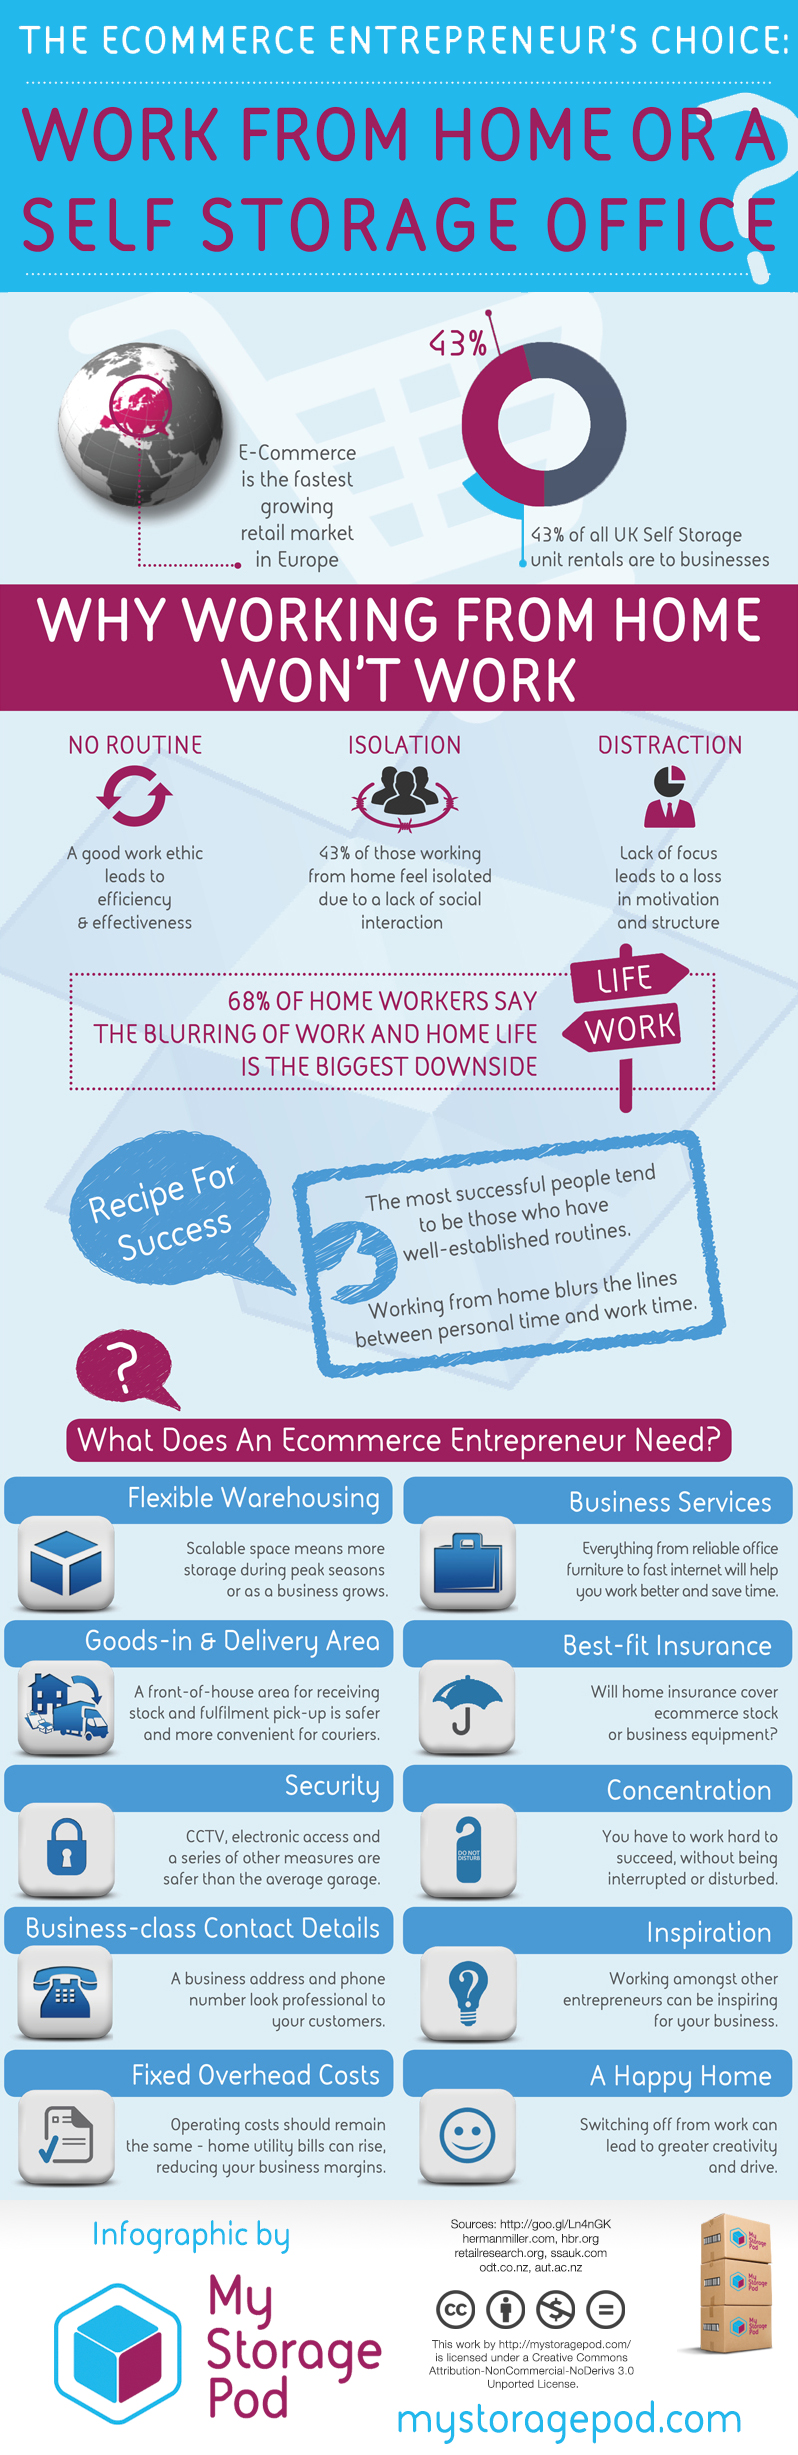 Infographic: The Ecommerce Entrepreneur's Choice: Work from home or a self storage office?